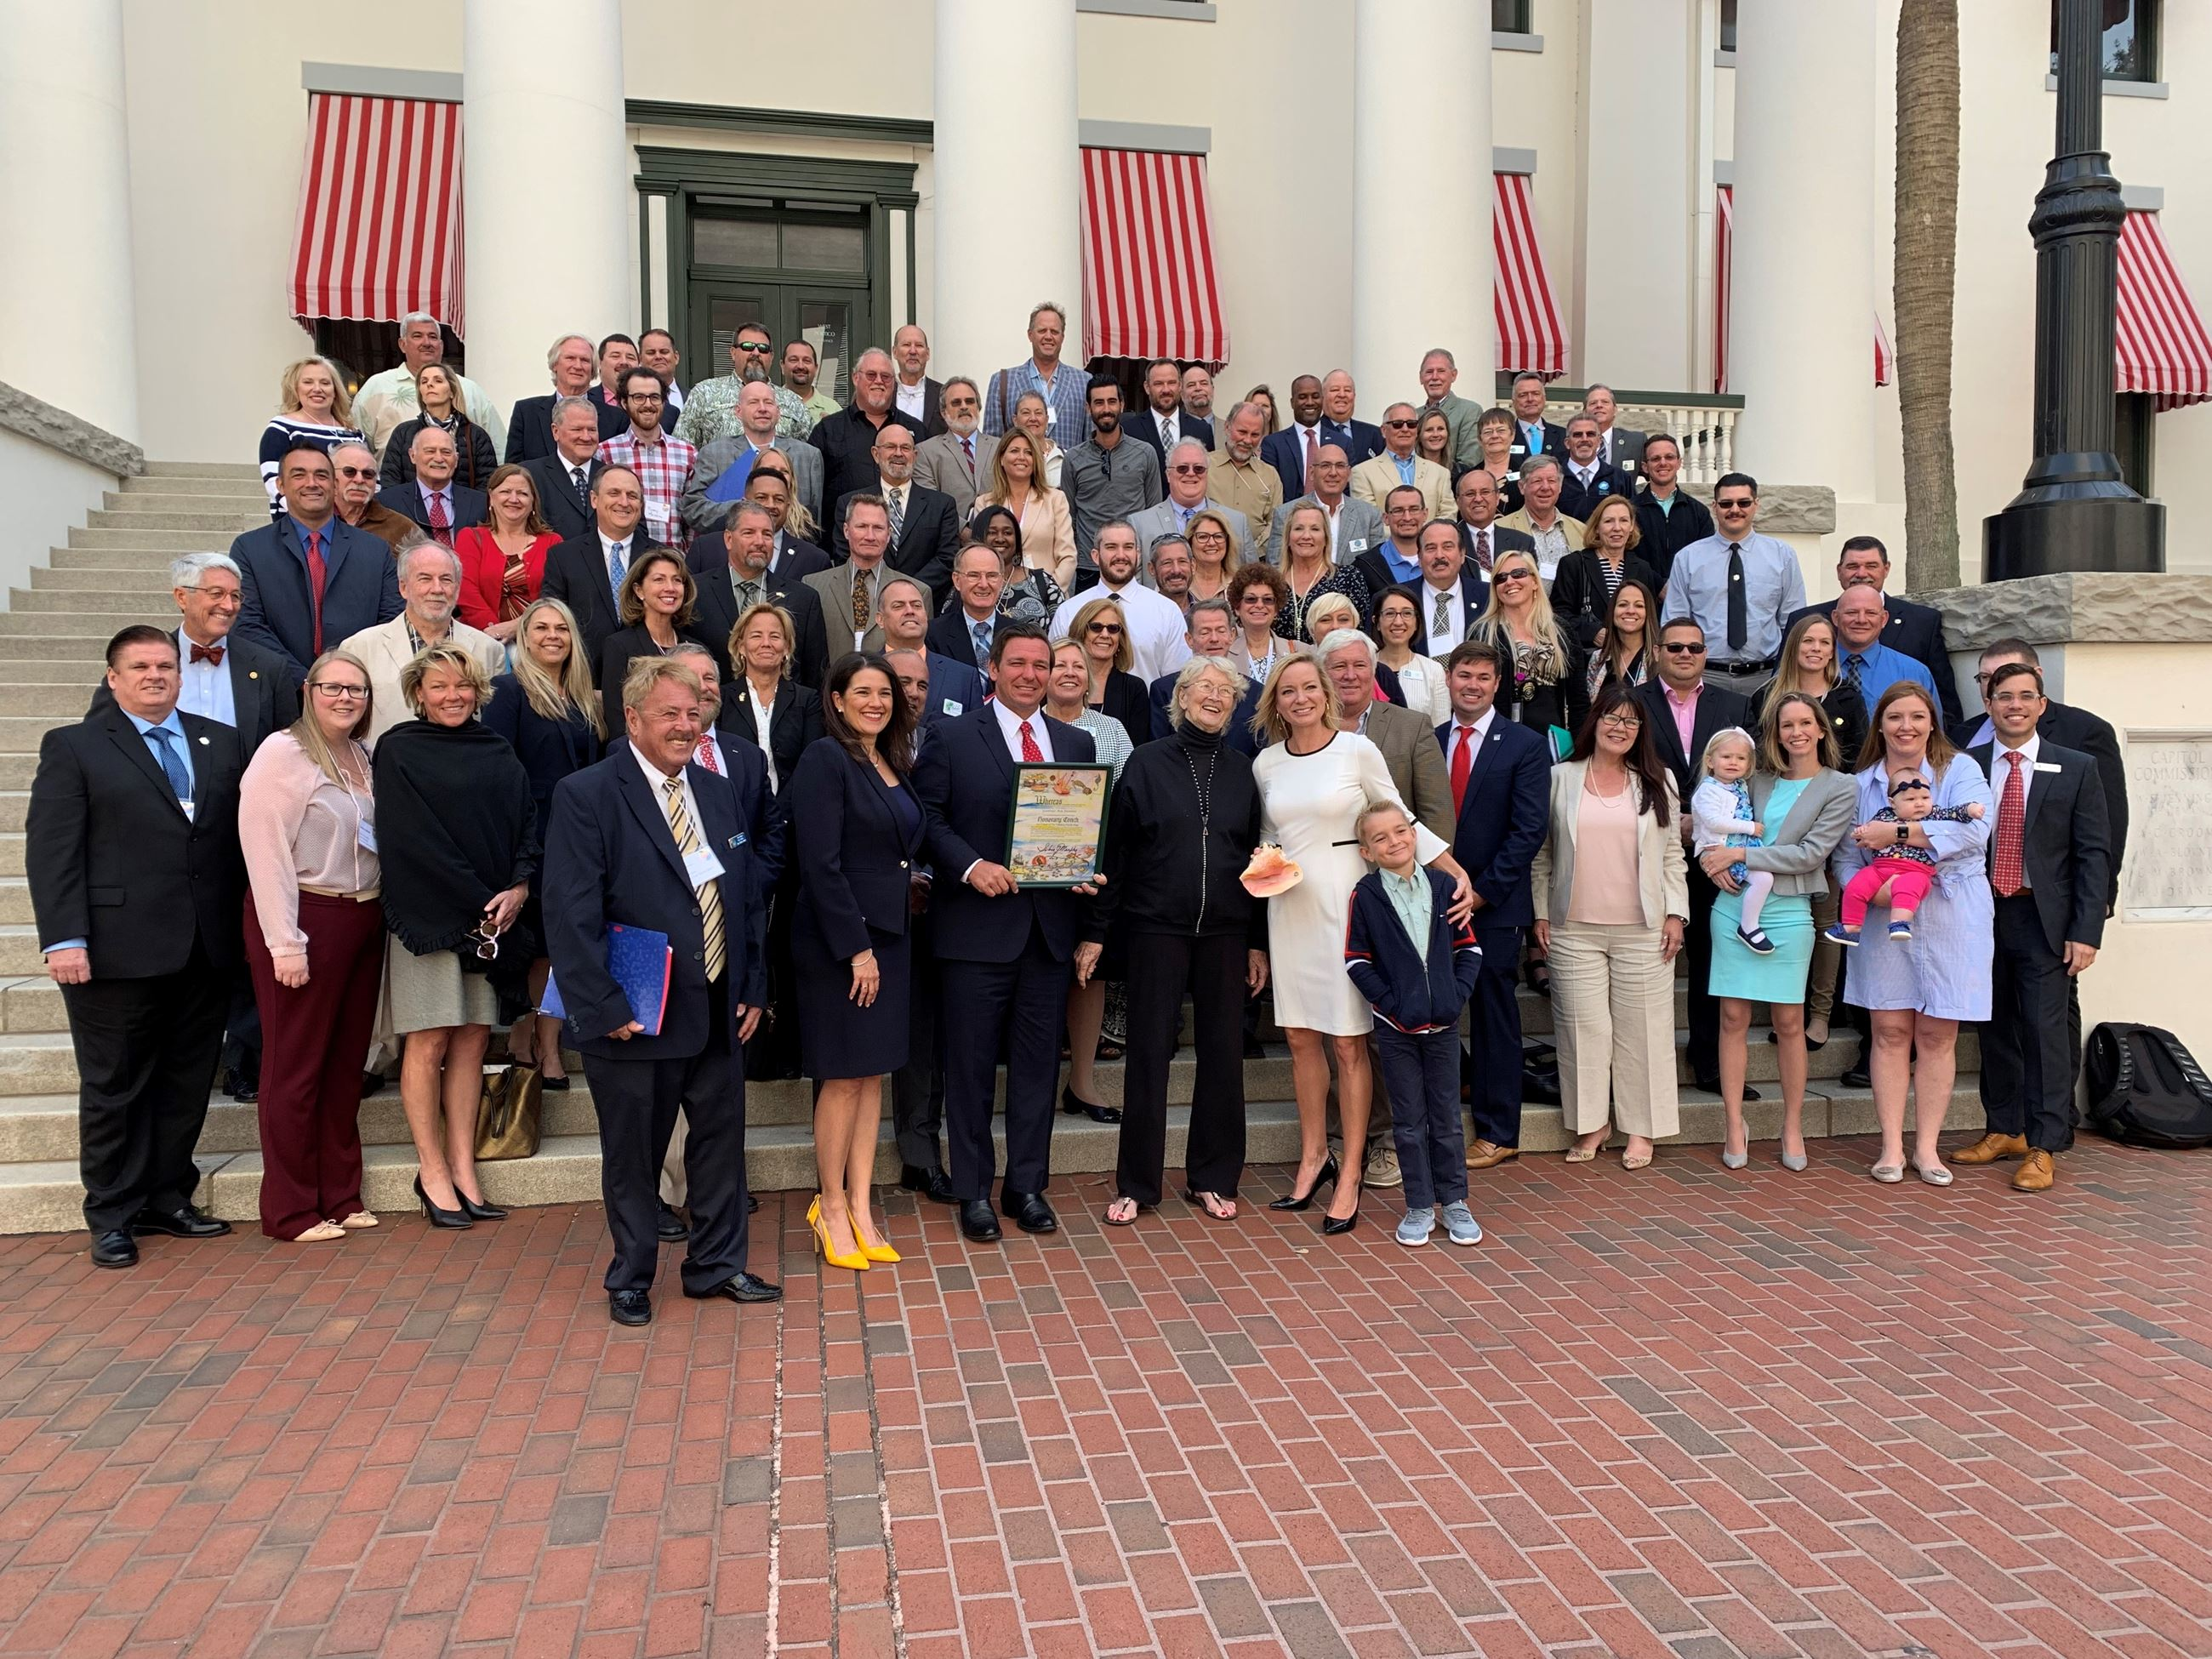 Florida Keys officials at Florida Keys Day in Tallahassee